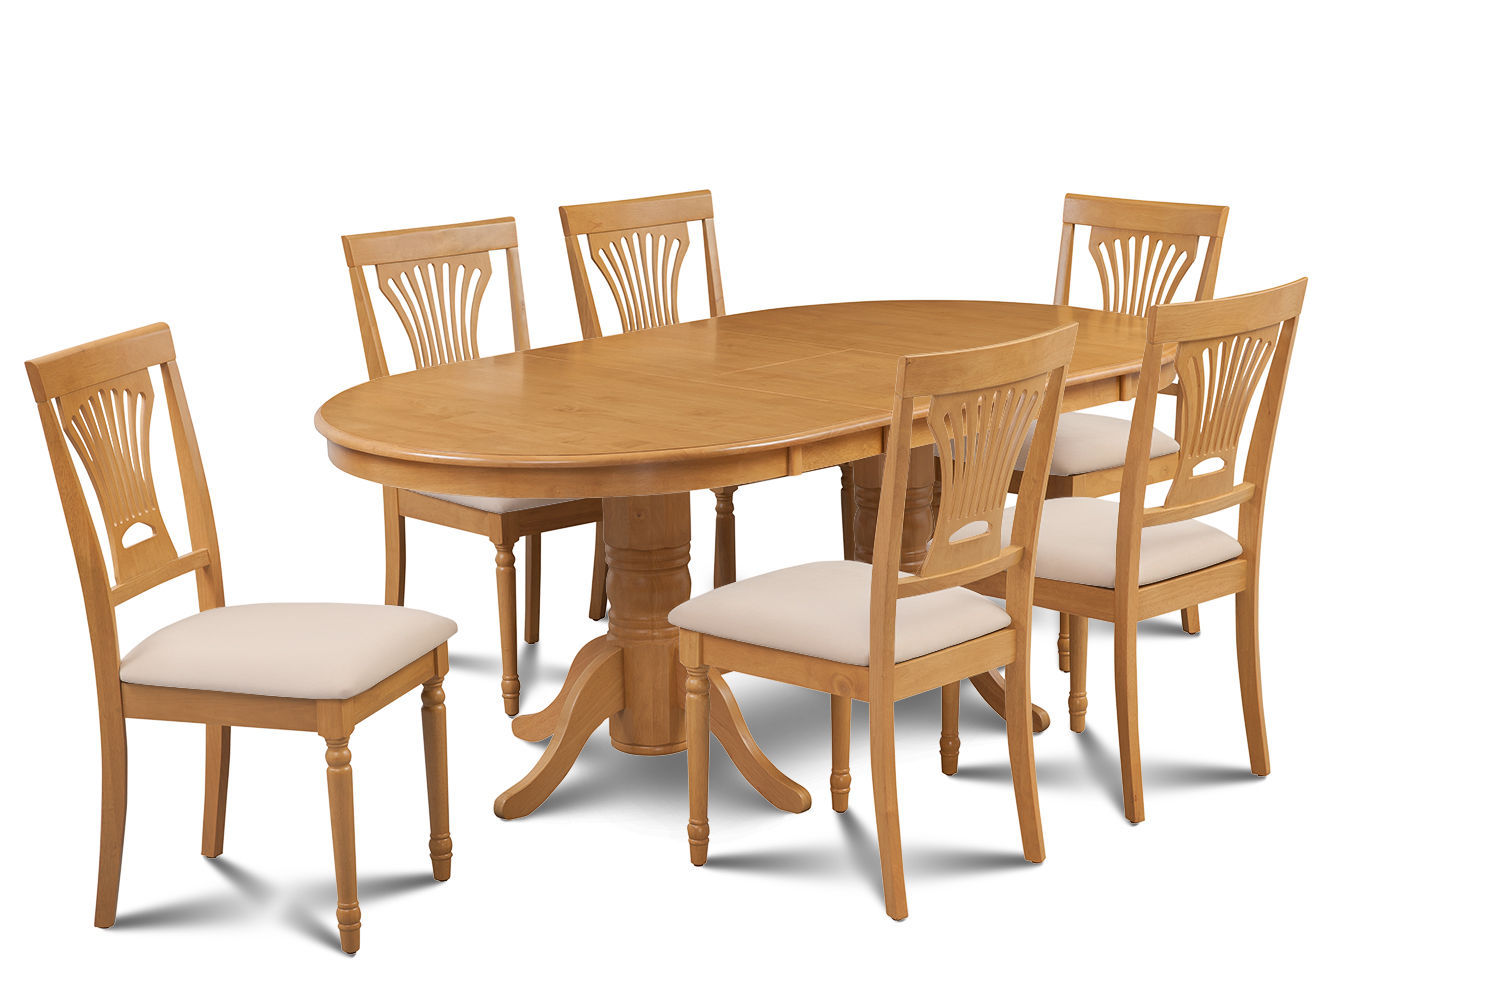 7 PIECE OVAL DINING ROOM TABLE SET w/ 6 SOFT-PADDED CHAIRS IN OAK FINISH